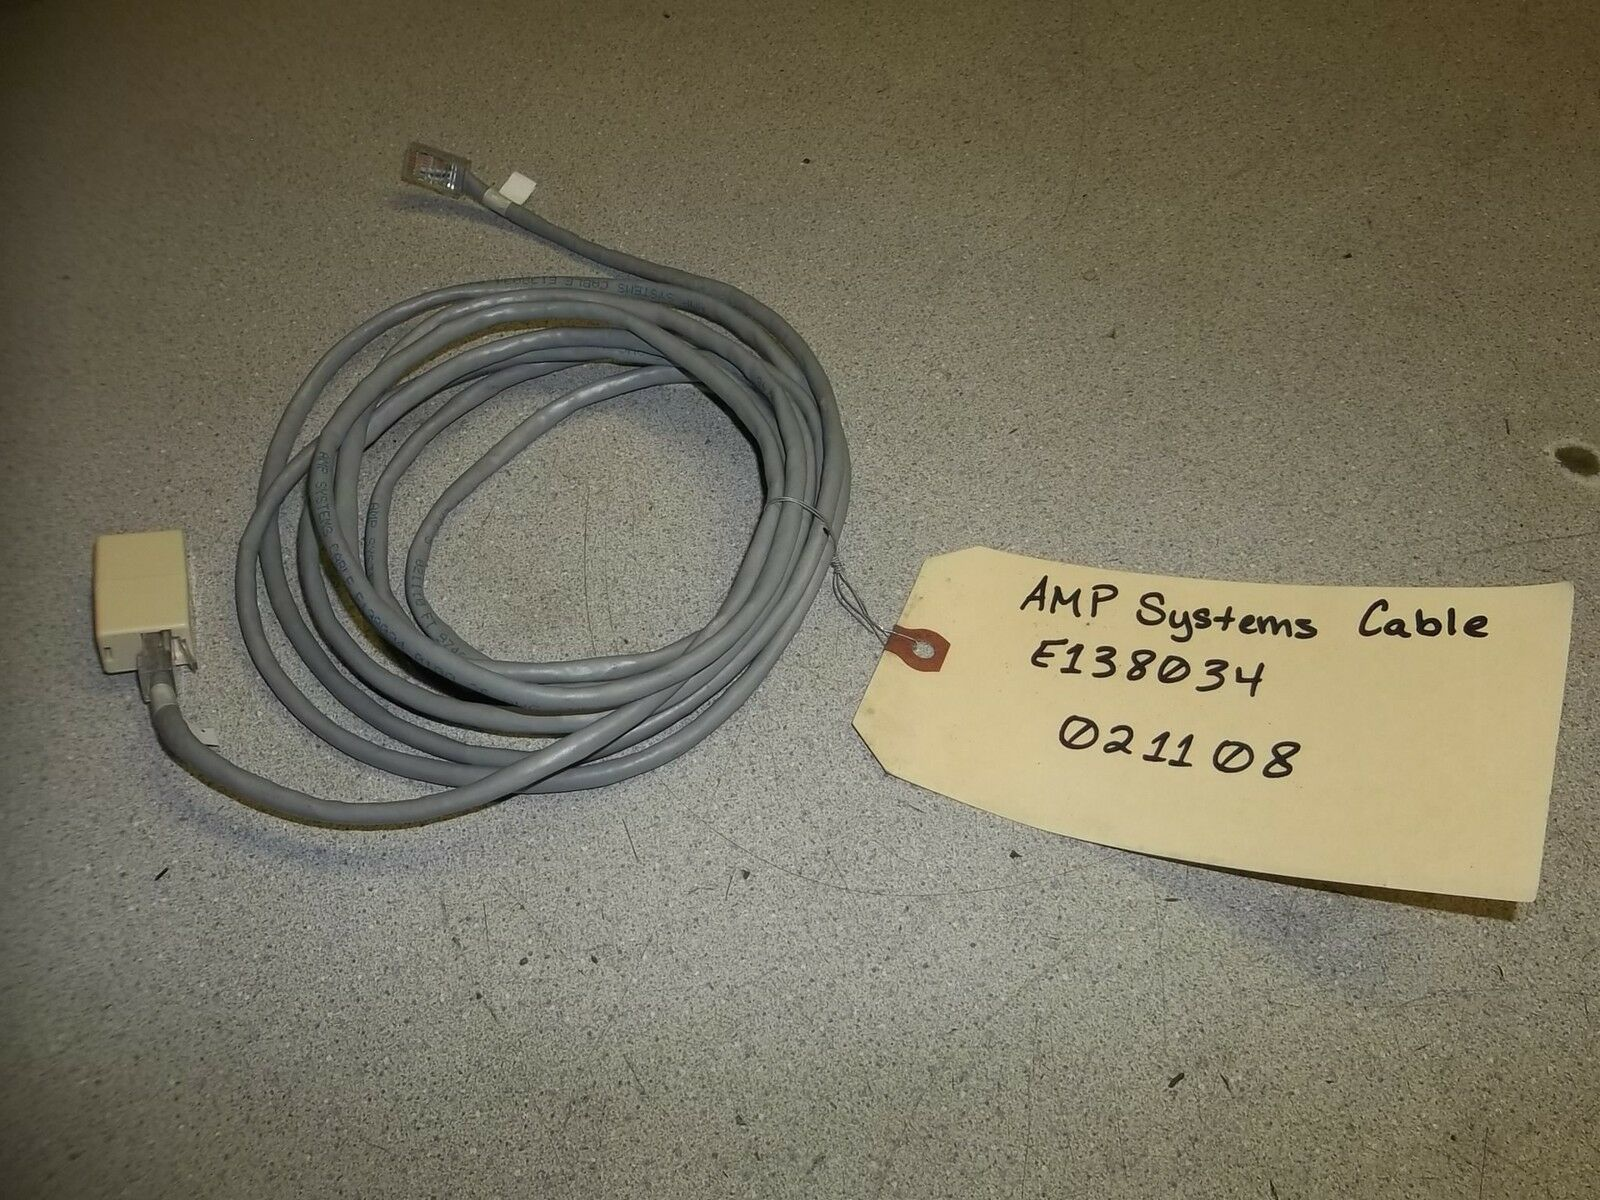 AMP Systems Cable E138034 0100 26 AWG Cm/mp PCC Ft4 Cat 5 021038 FT ...